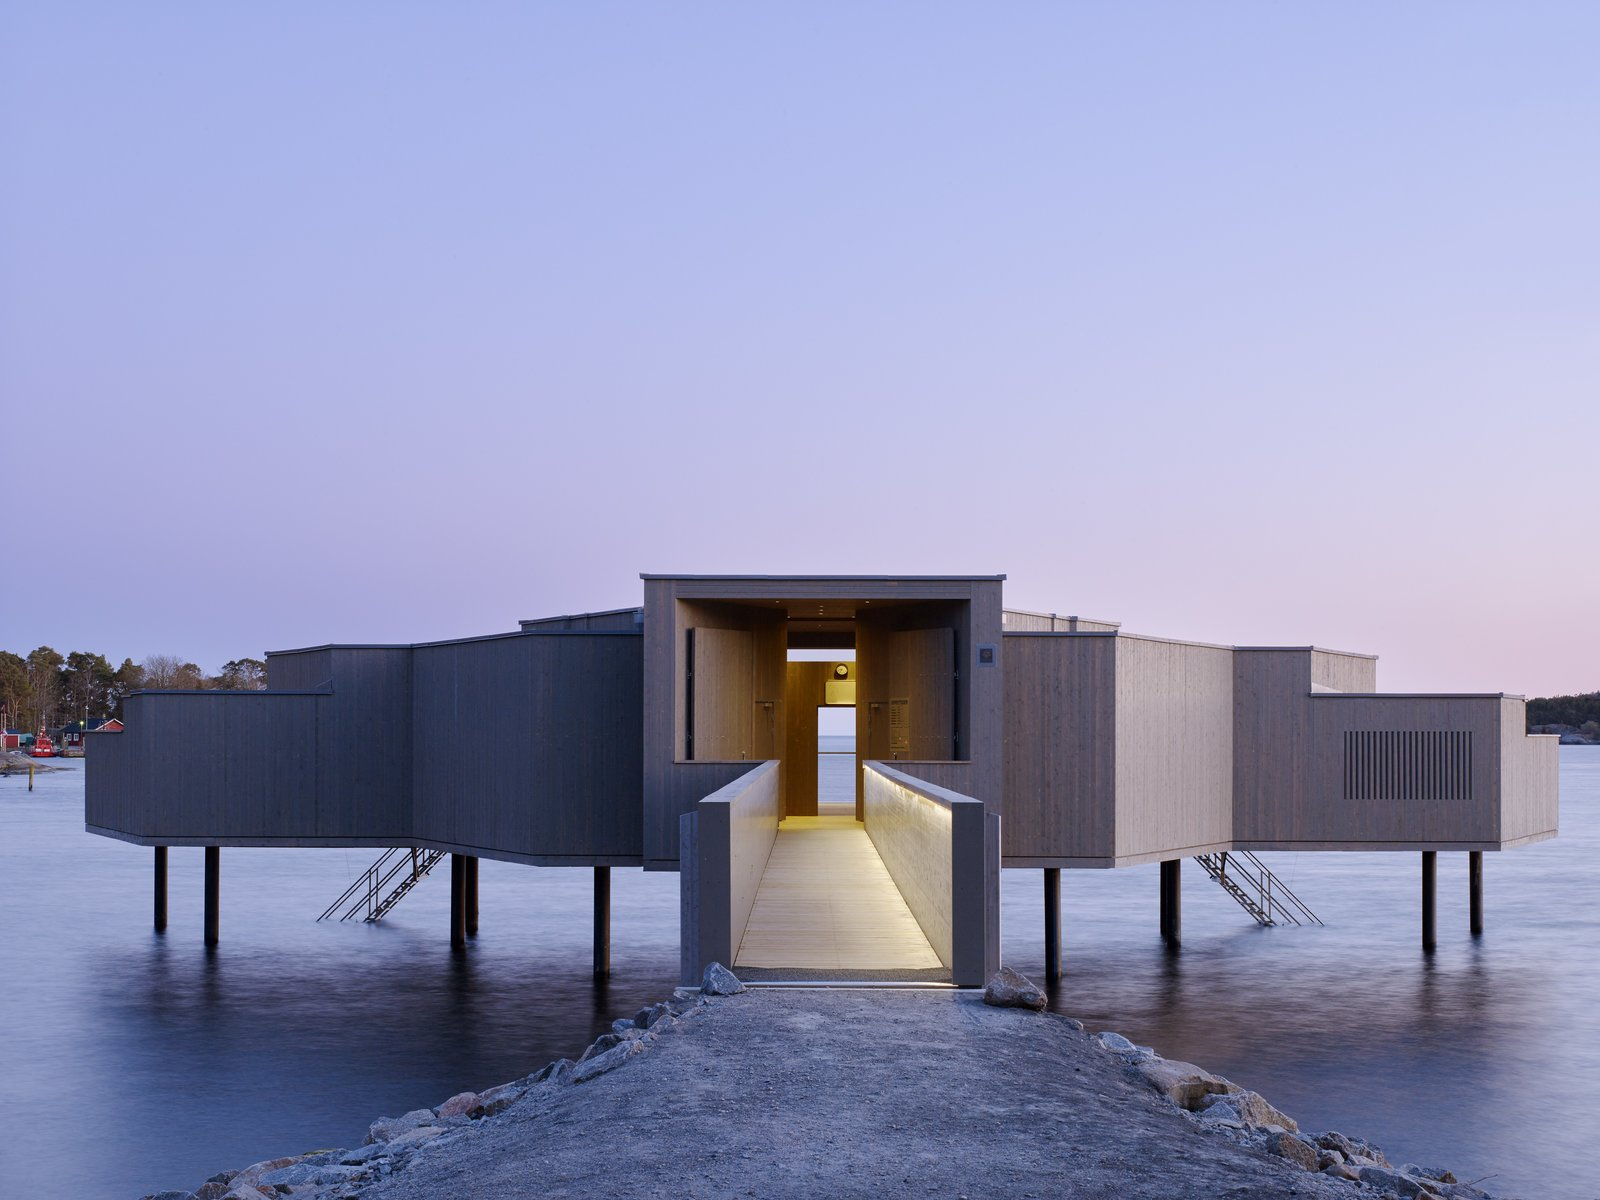 Exterior and Wood Siding Material  Photo 1 of 6 in A Swedish Coastal Town Commissions an Otherworldly Bathhouse